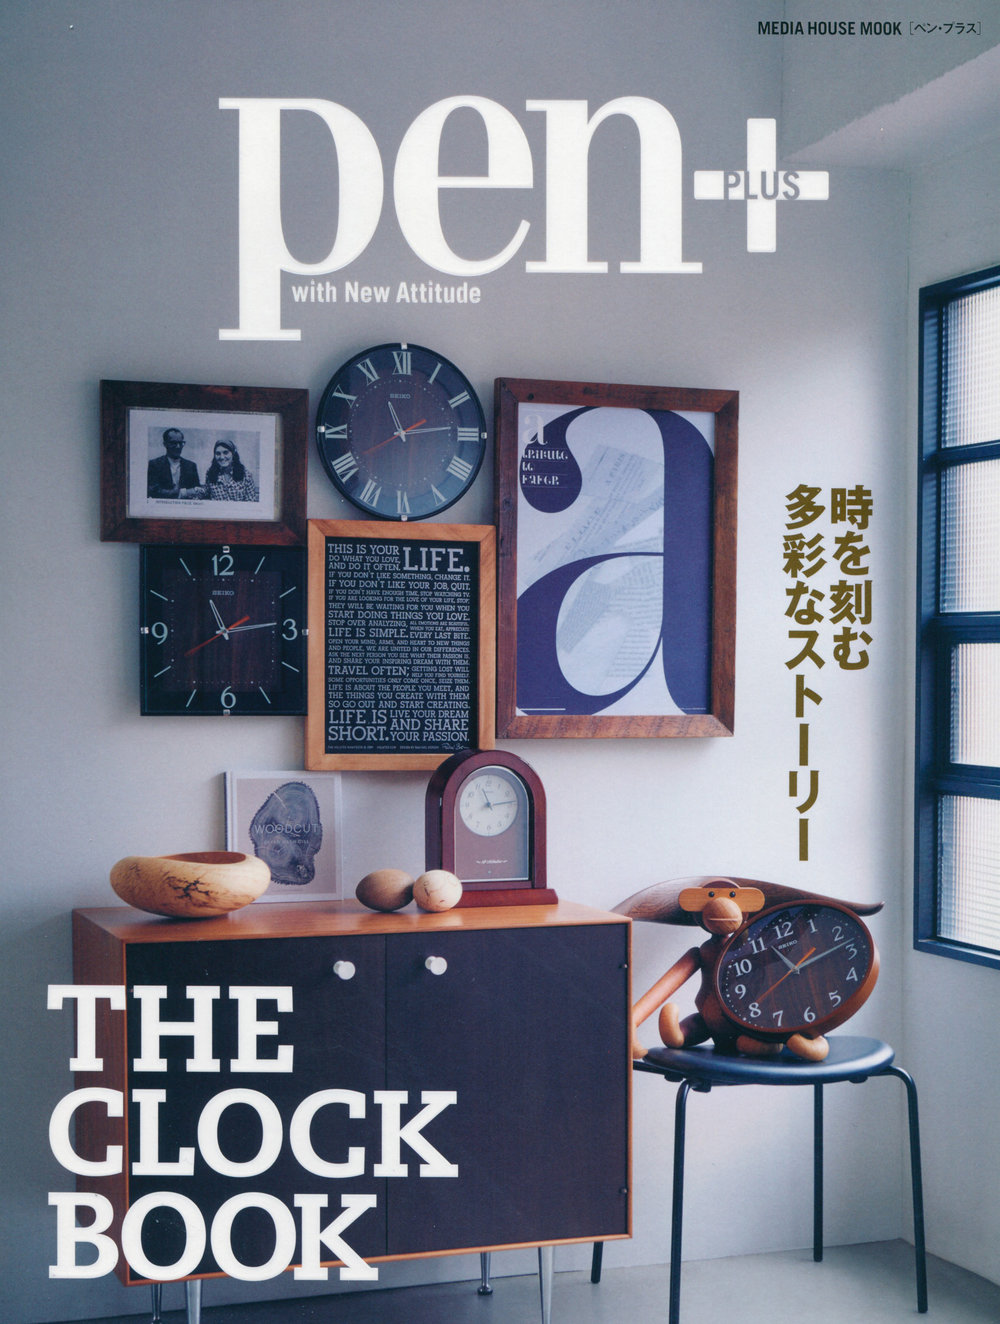 Cover - Pen+ with New Attitude - The Clock Book